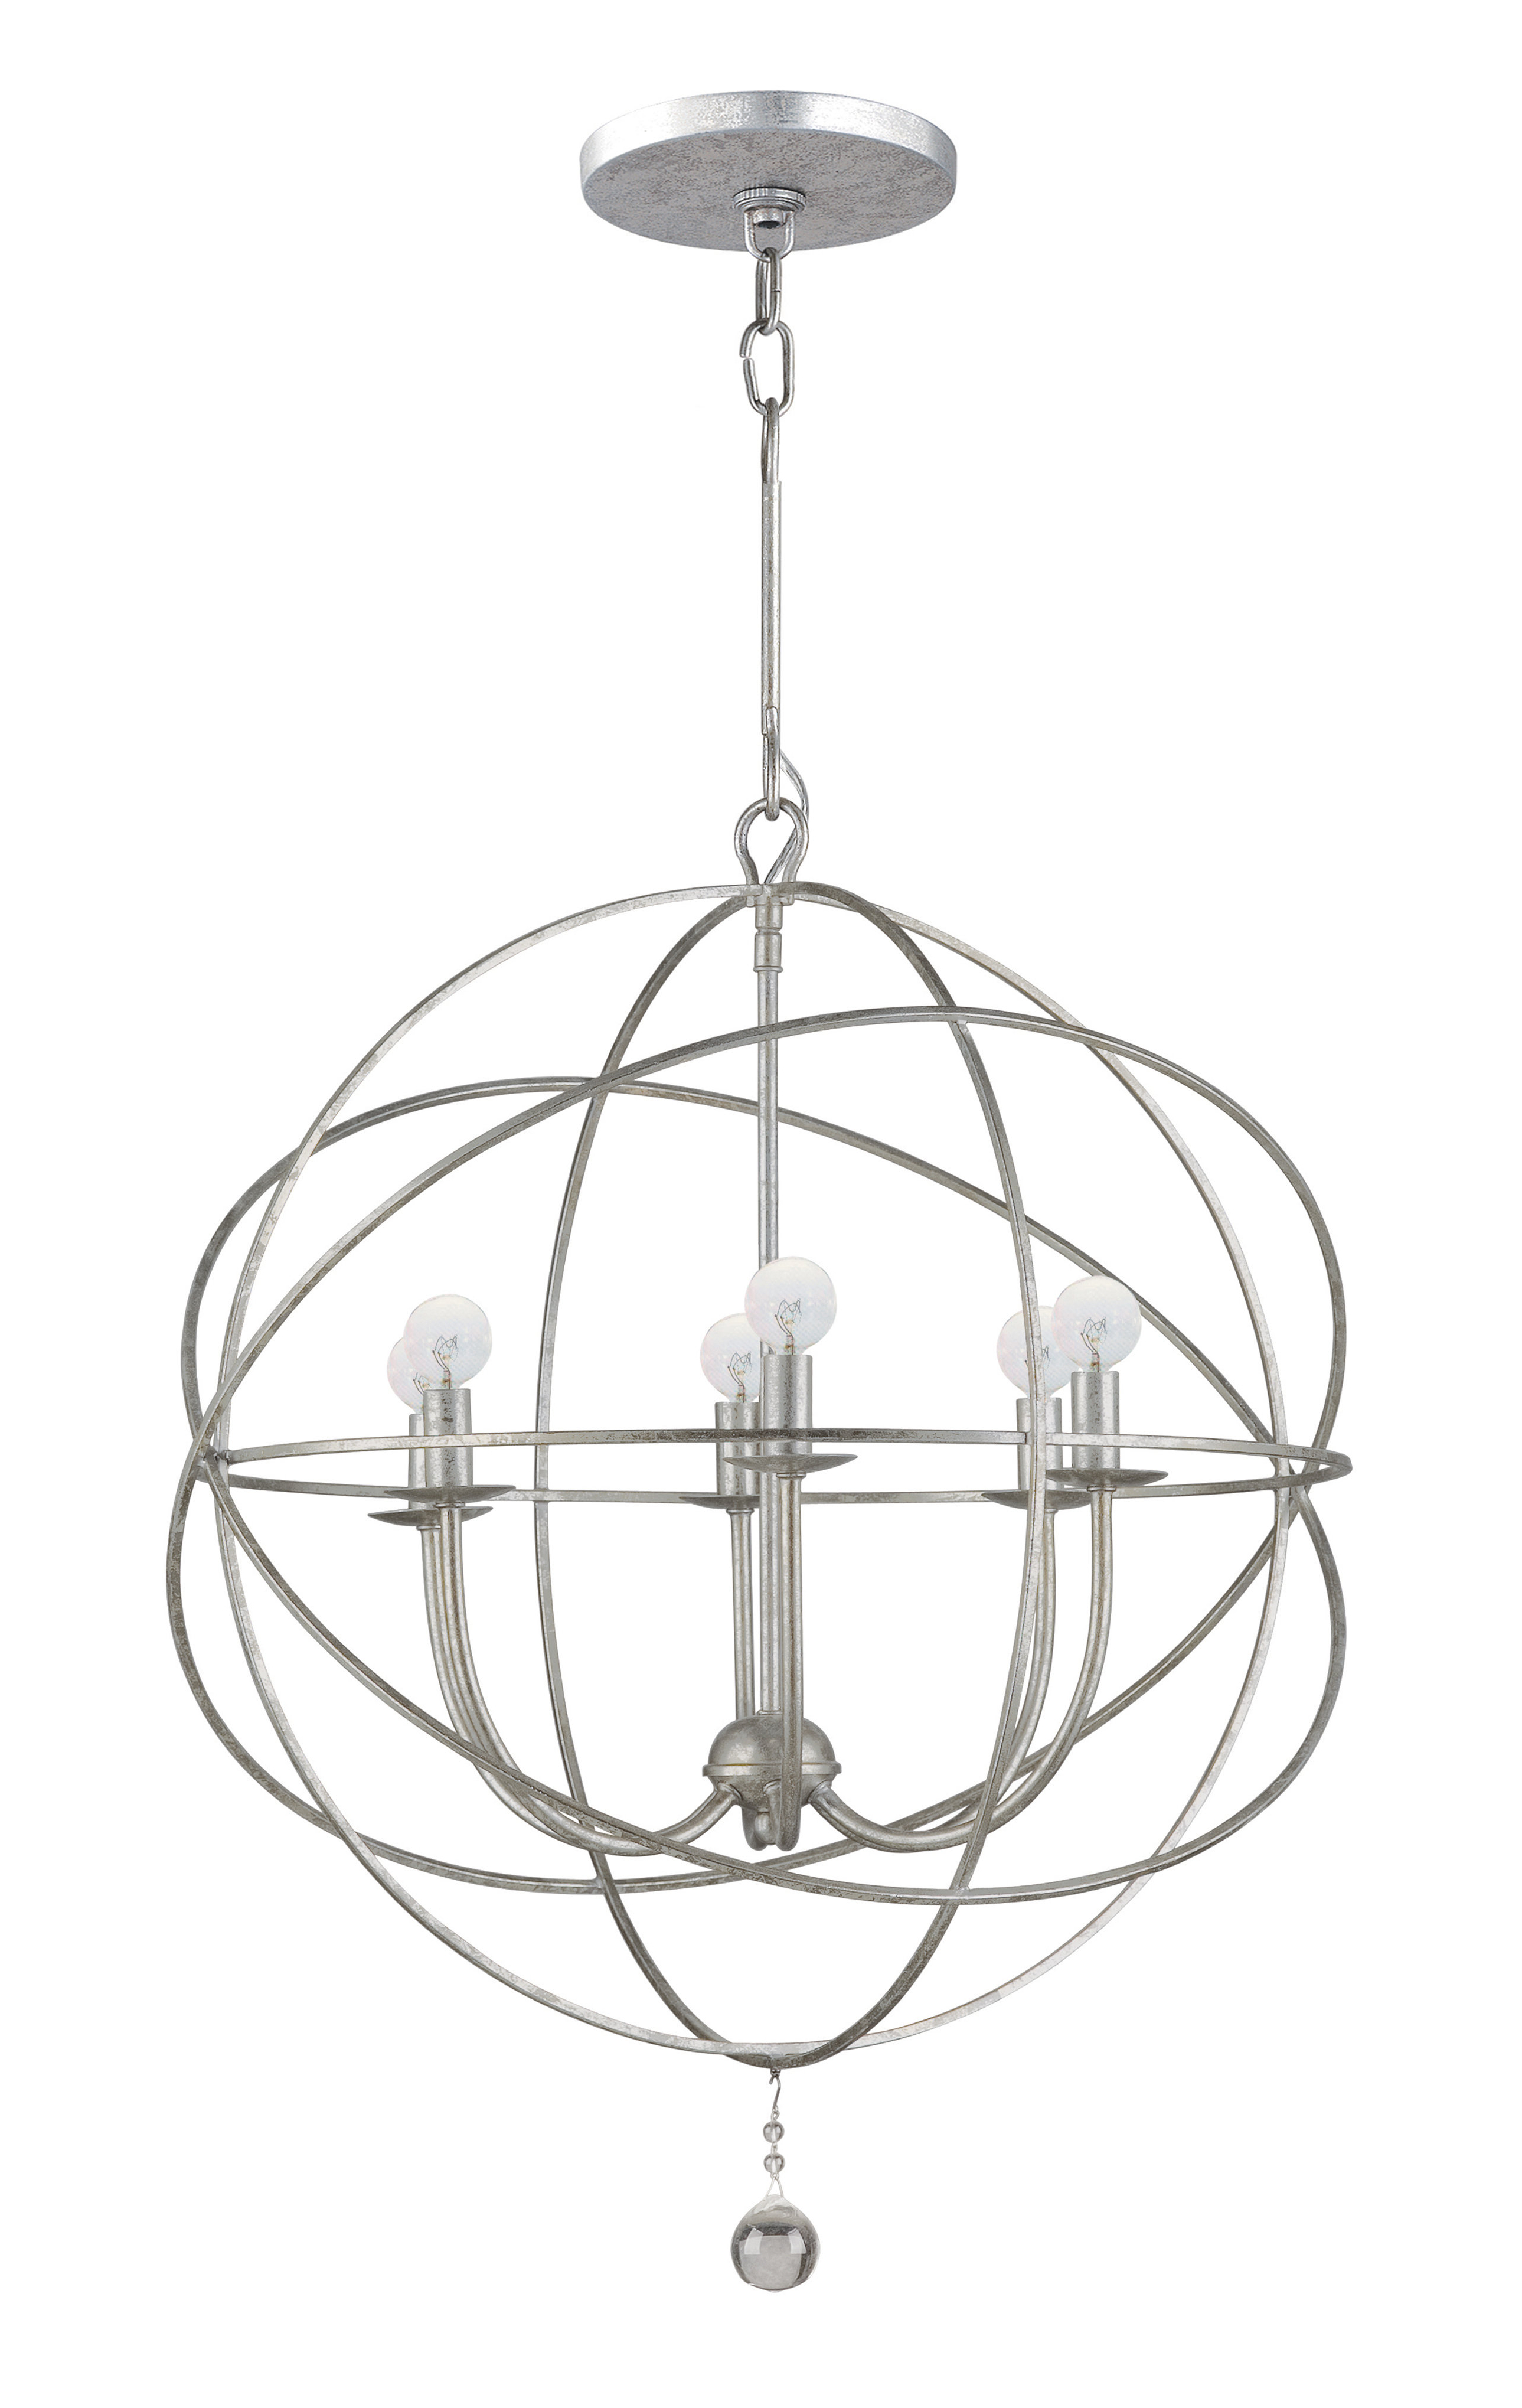 Gregoire 6 Light Globe Chandeliers With Regard To Newest Gregoire 6 Light Globe Chandelier (Gallery 2 of 20)